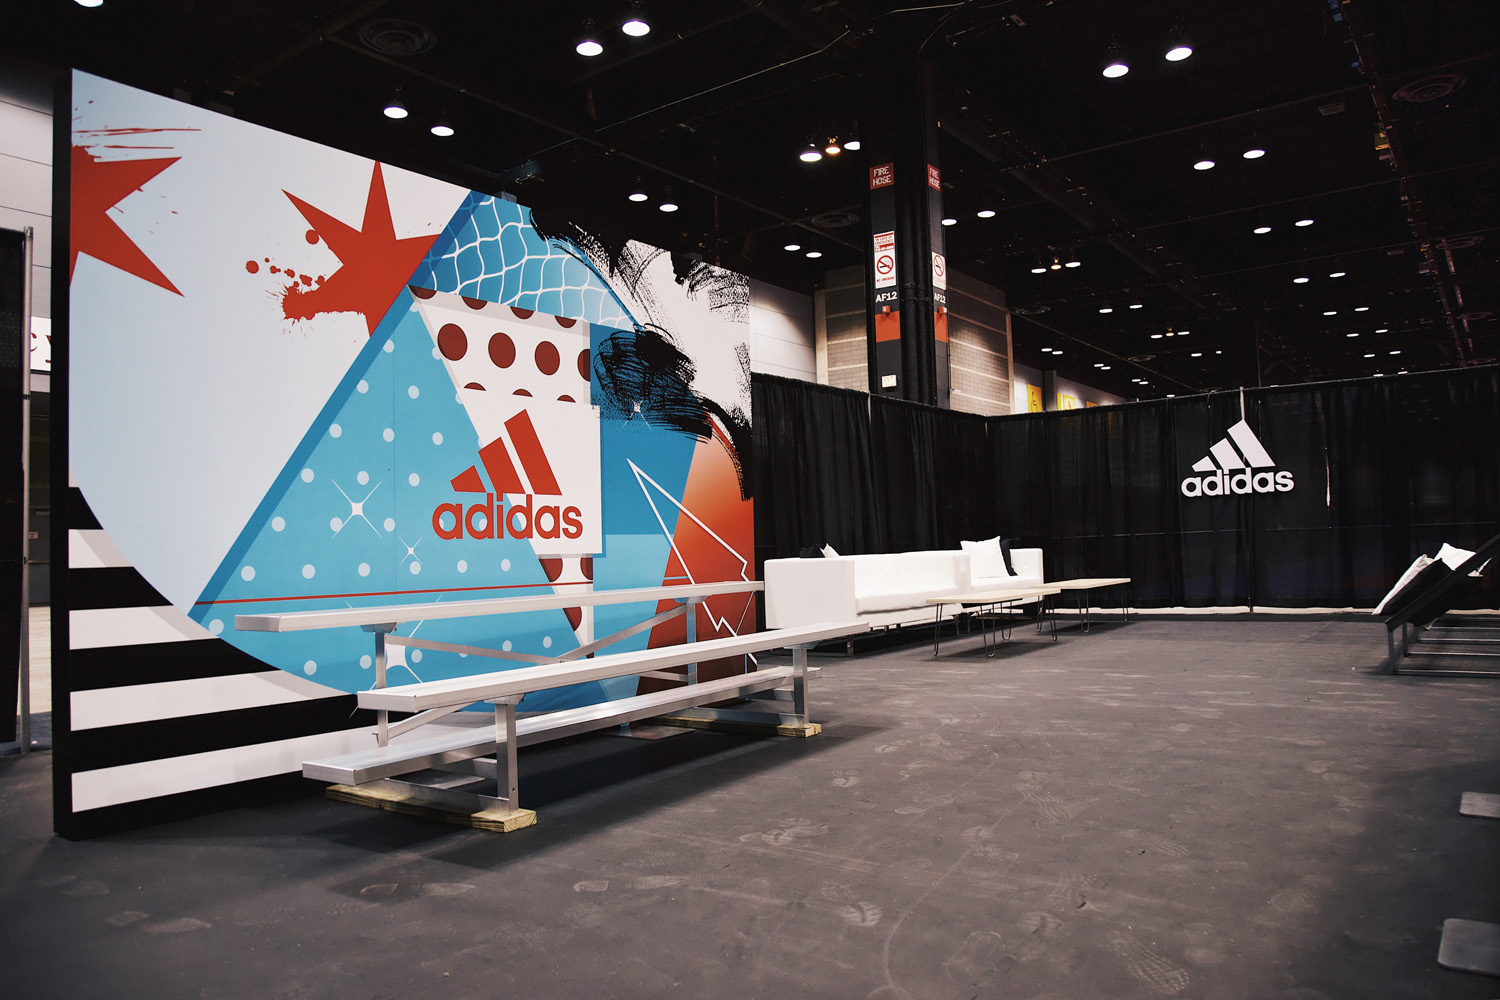 Adidas Digital Design Backdrop